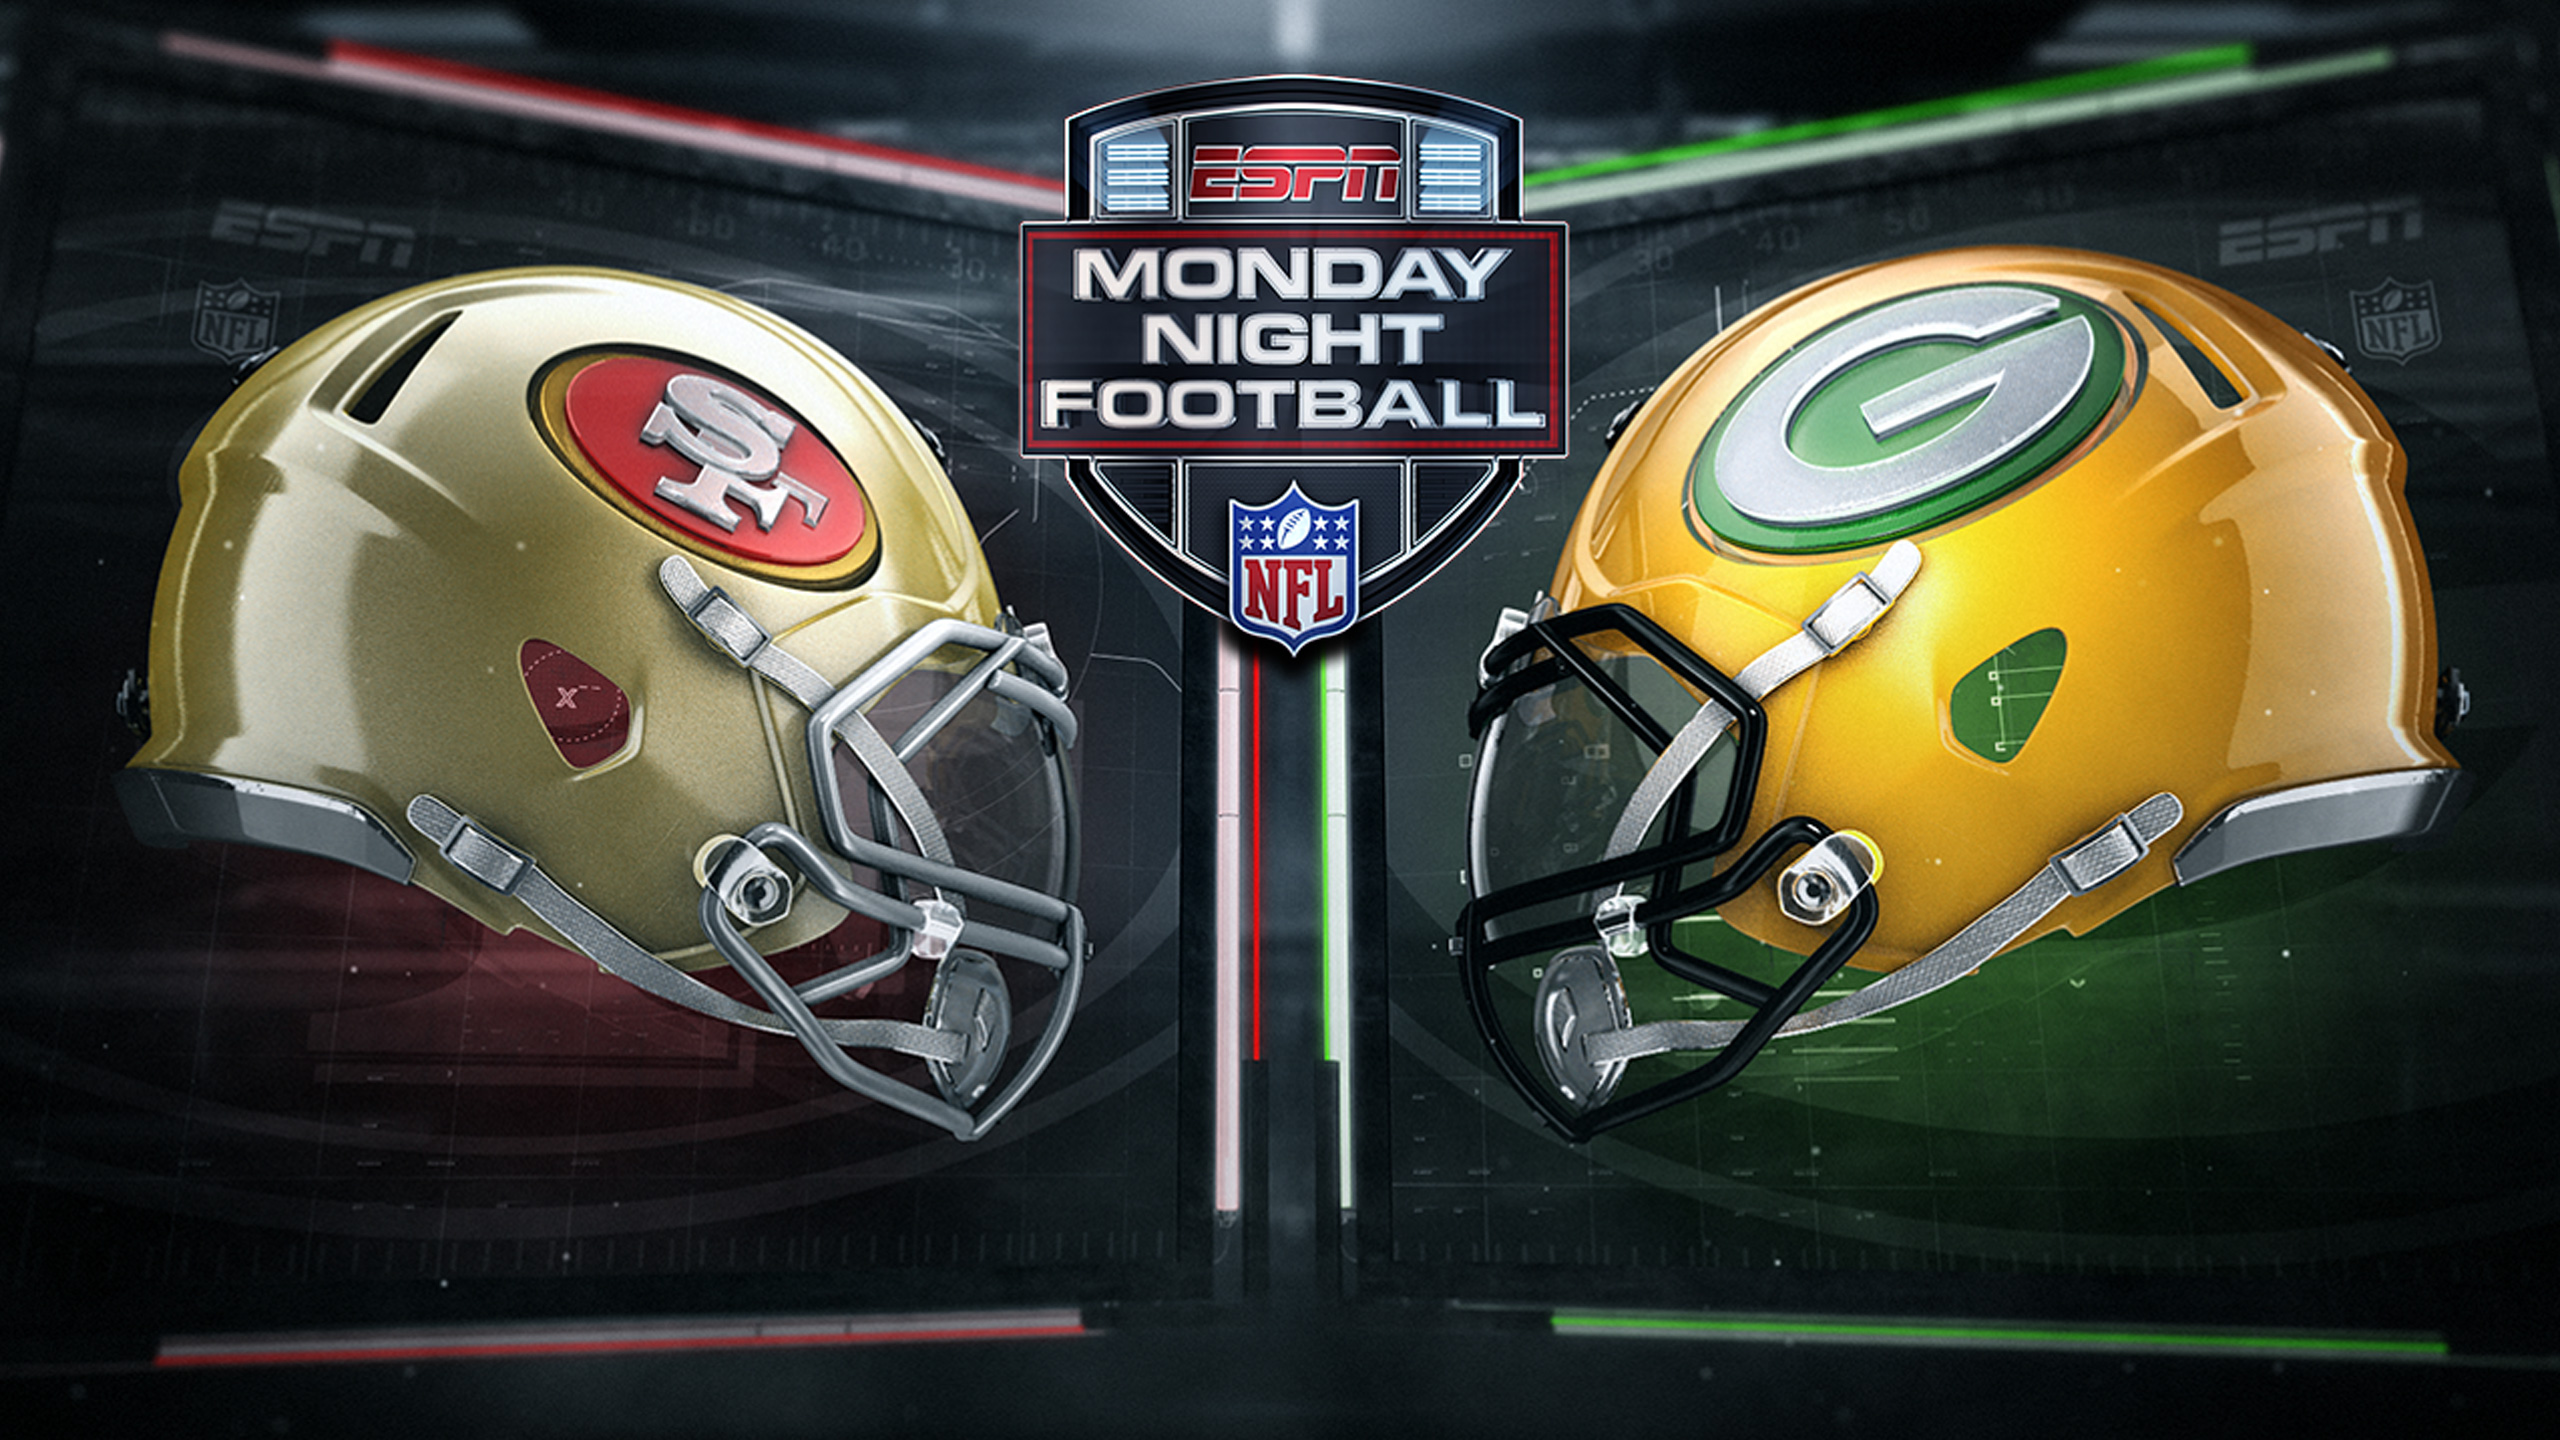 In Spanish - San Francisco 49ers vs. Green Bay Packers